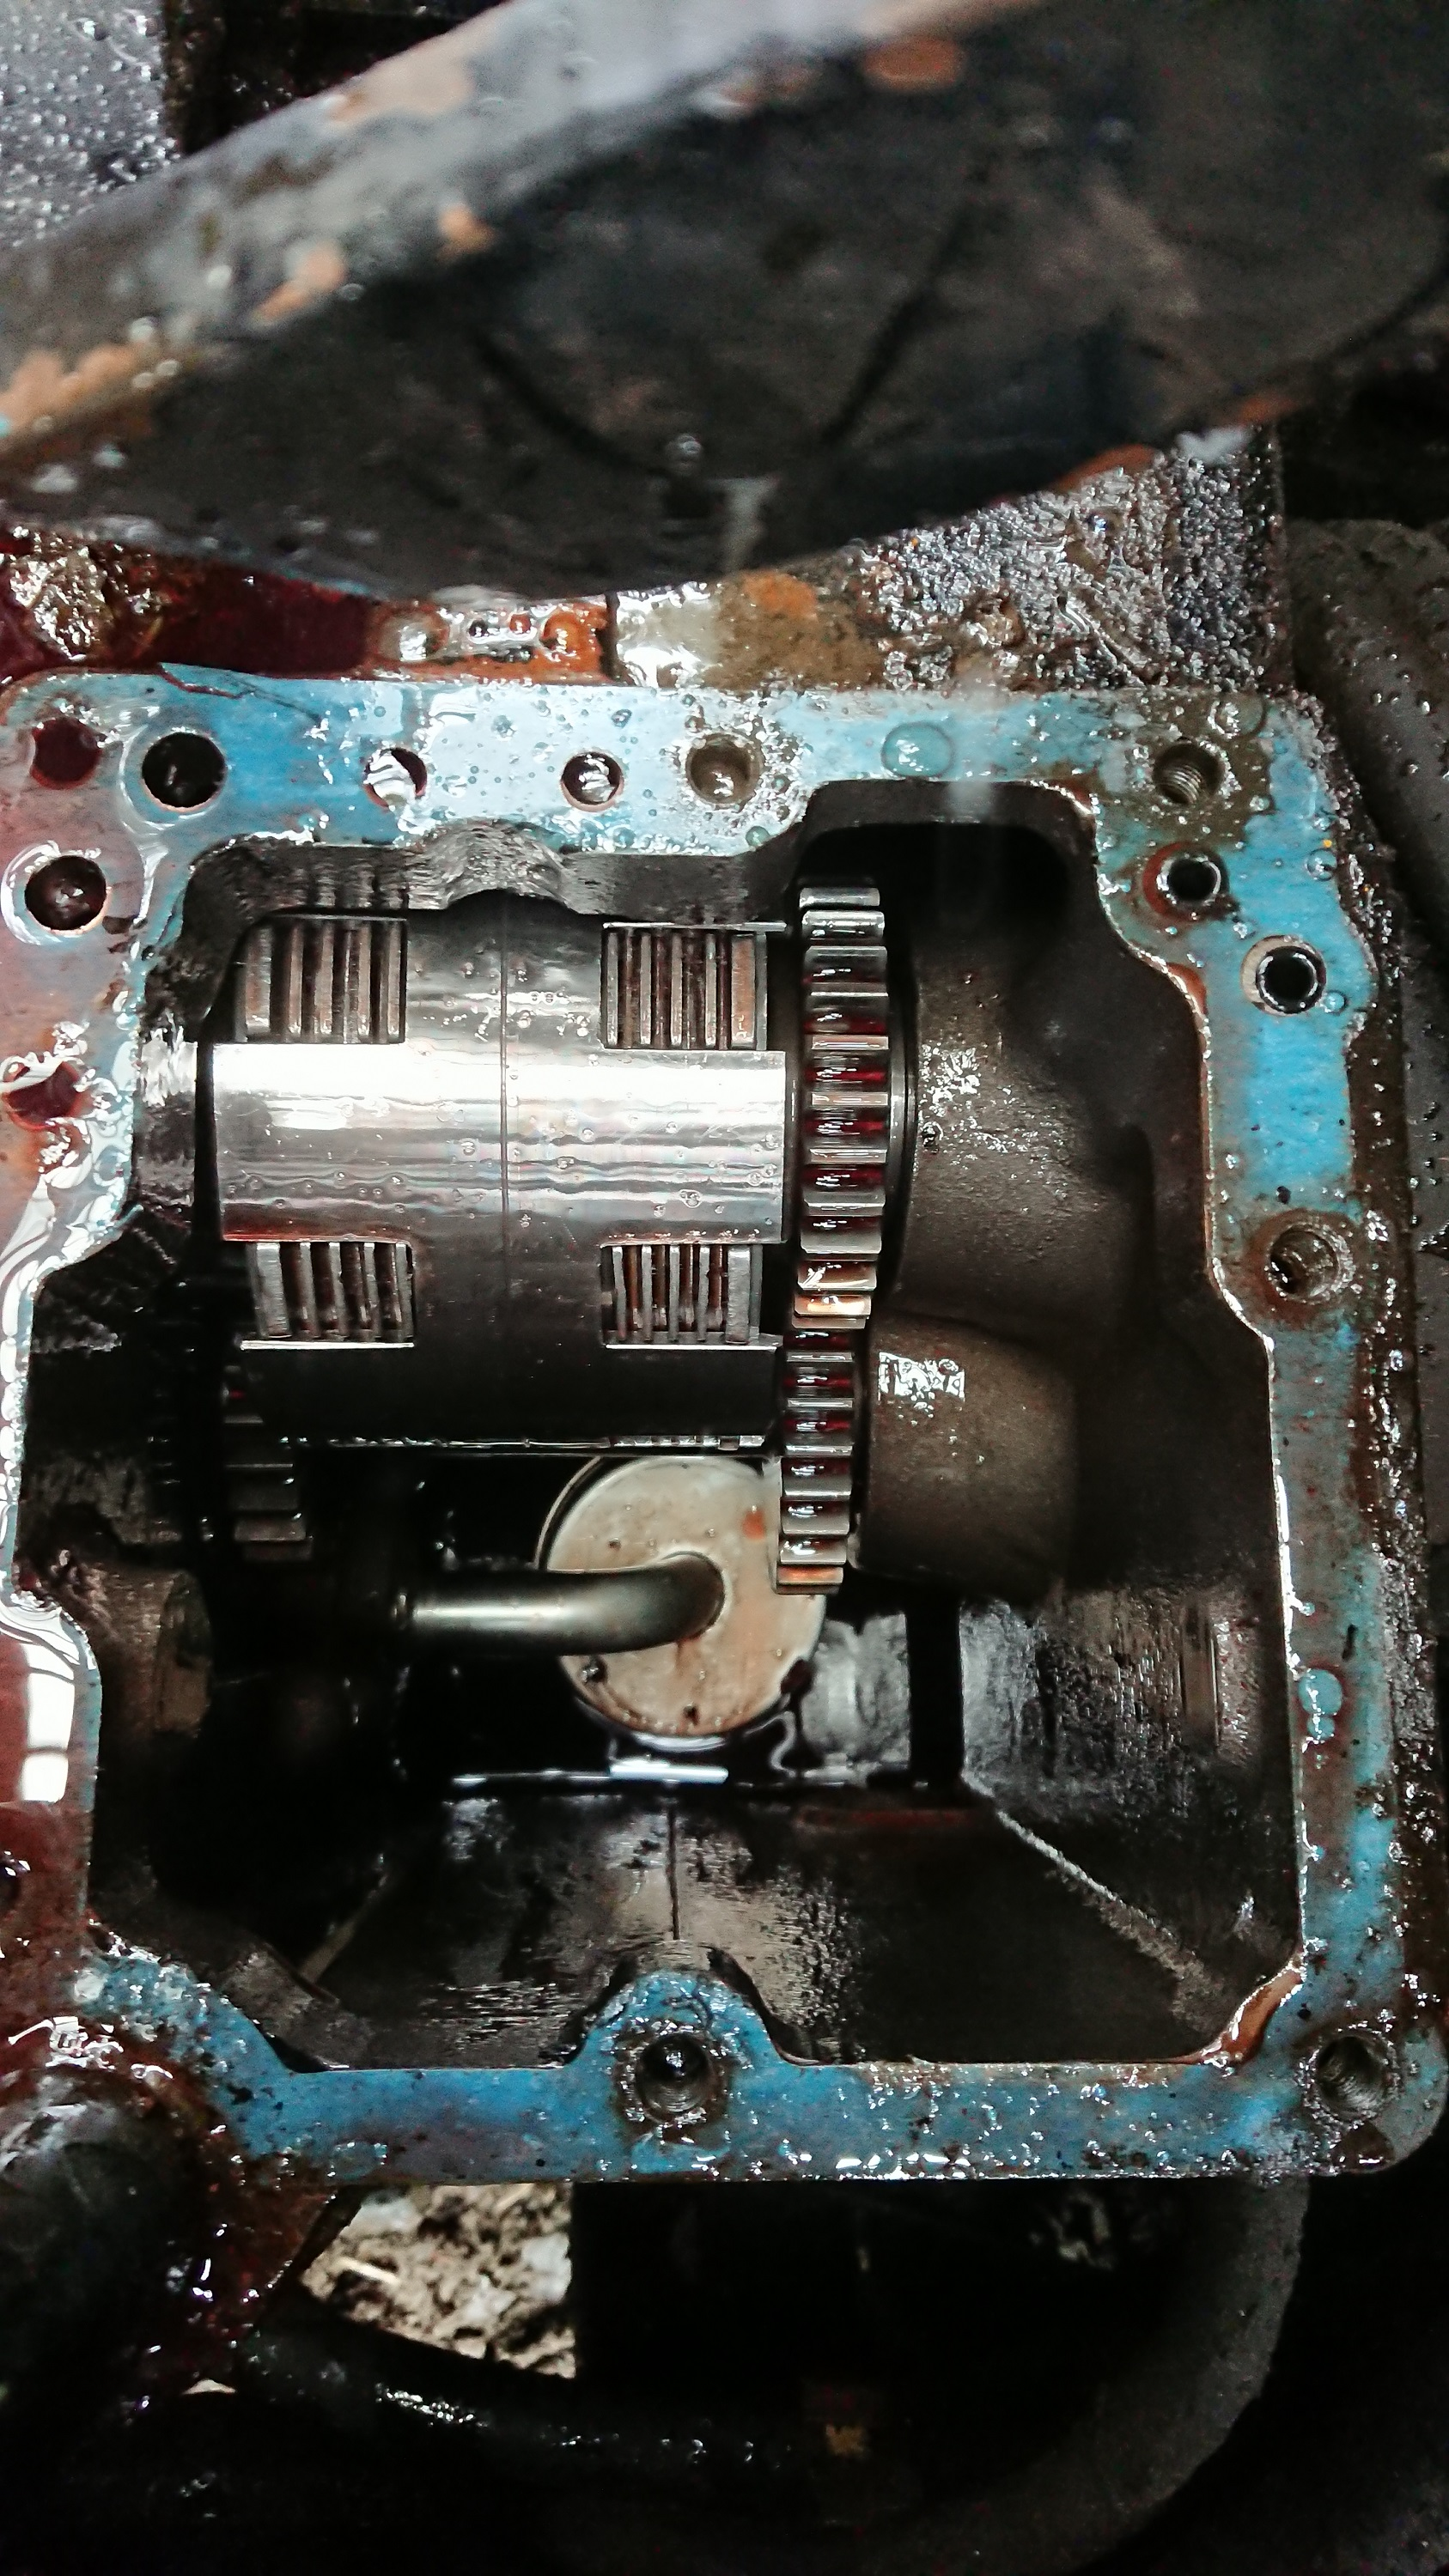 I have a problem with an old TCM forklift FD20Z5T, year 1996